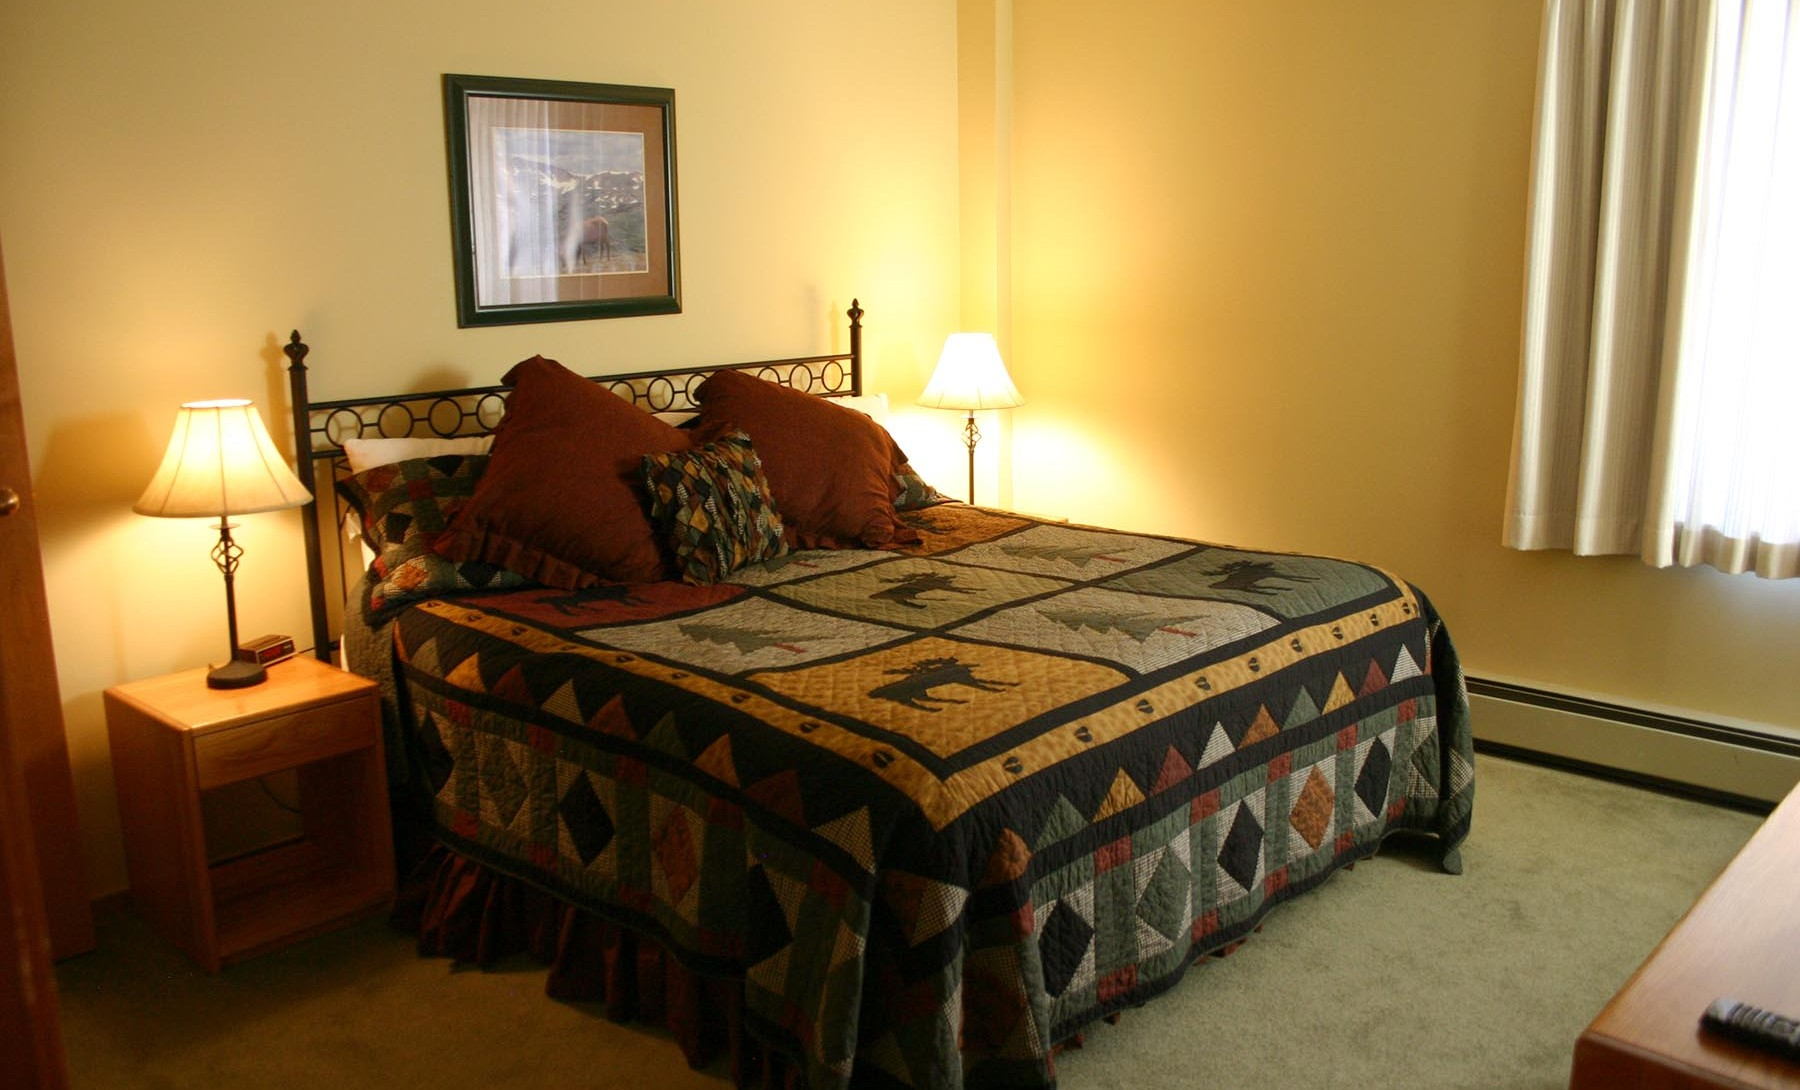 Unit 329 - Village Square Bedroom